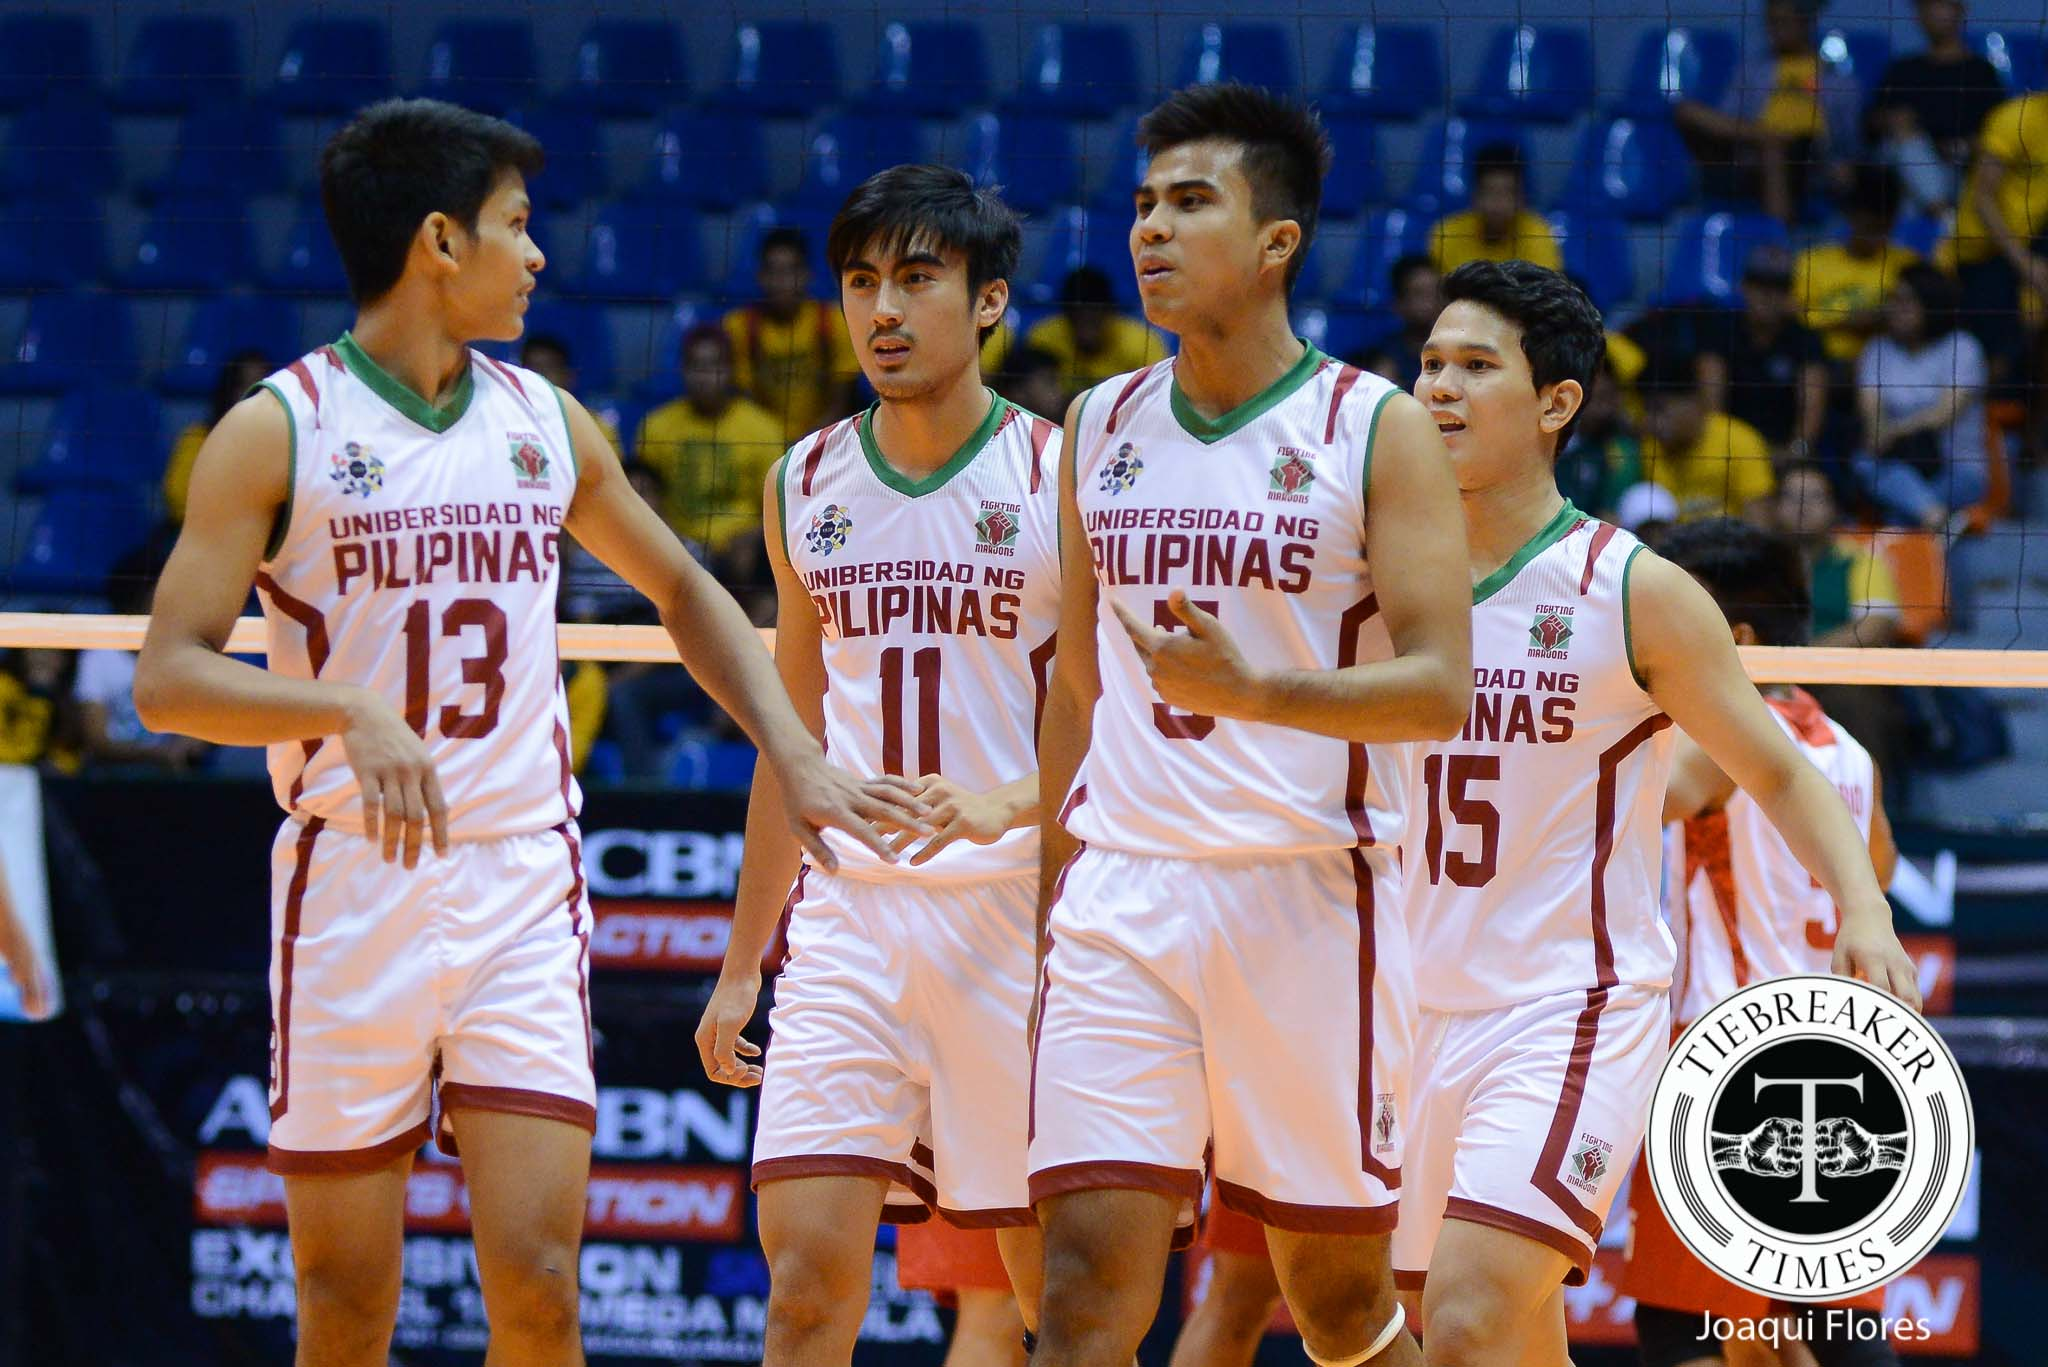 Tiebreaker Times Valbuena, Miguel lead UP past hungry UE News UAAP UE UP Volleyball  Wendel Miguel Vince Abrot UP Men's Volleyball UE Men's Volleyball UAAP Season 78 Men's Volleyball UAAP Season 78 Mark Millete Edward Camposano Alfred Valbuena